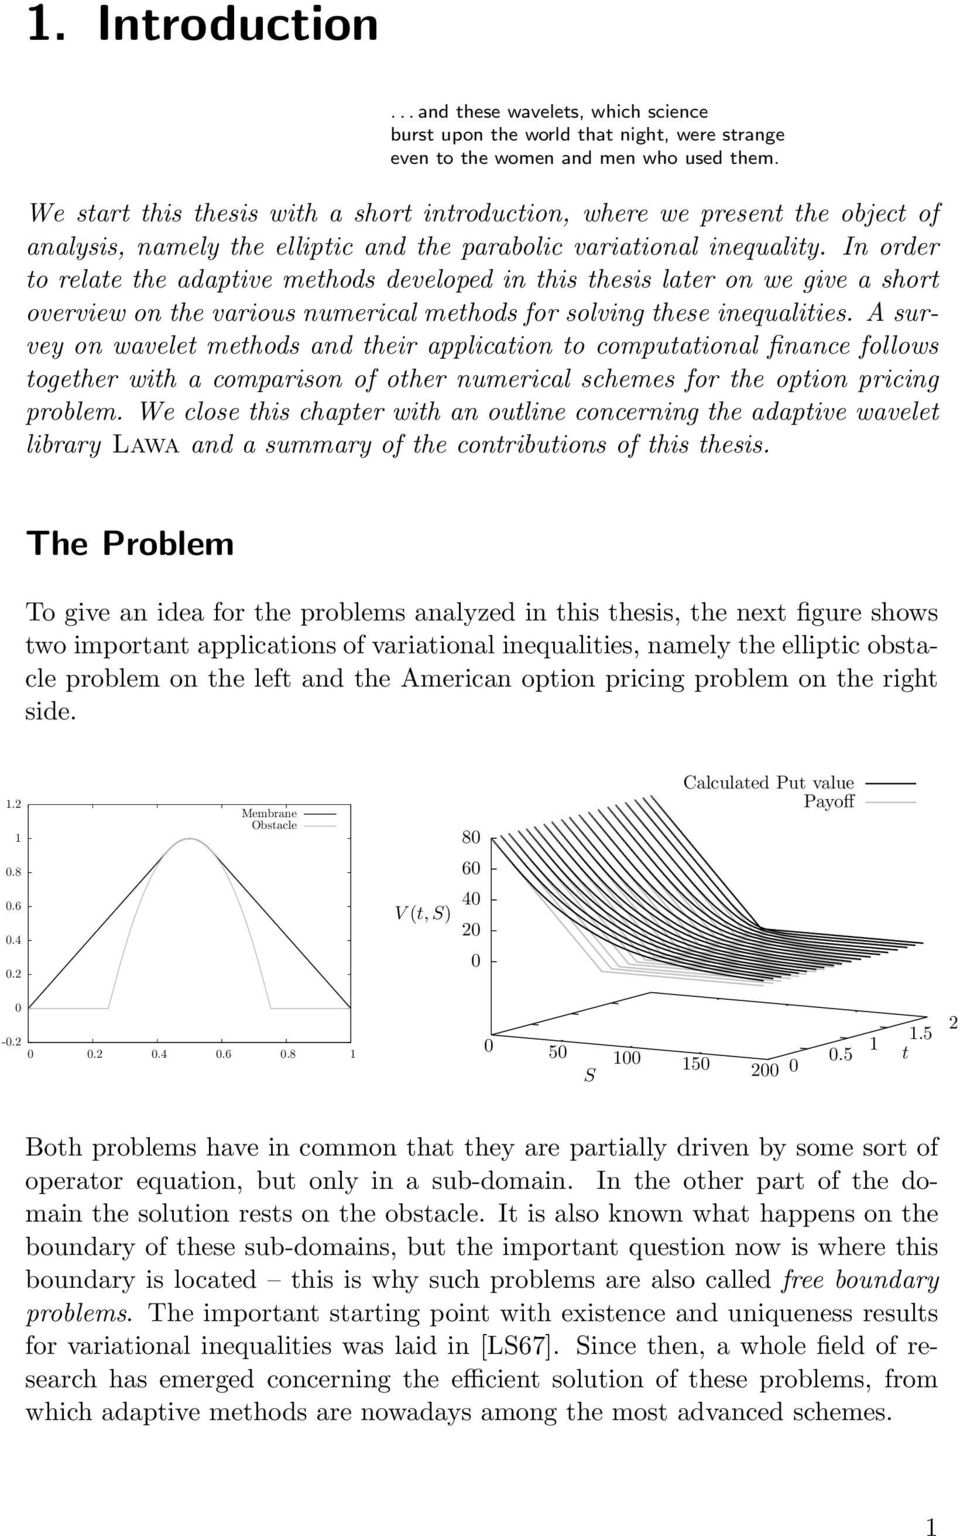 In order to relate the adaptive methods developed in this thesis later on we give a short overview on the various numerical methods for solving these inequalities.